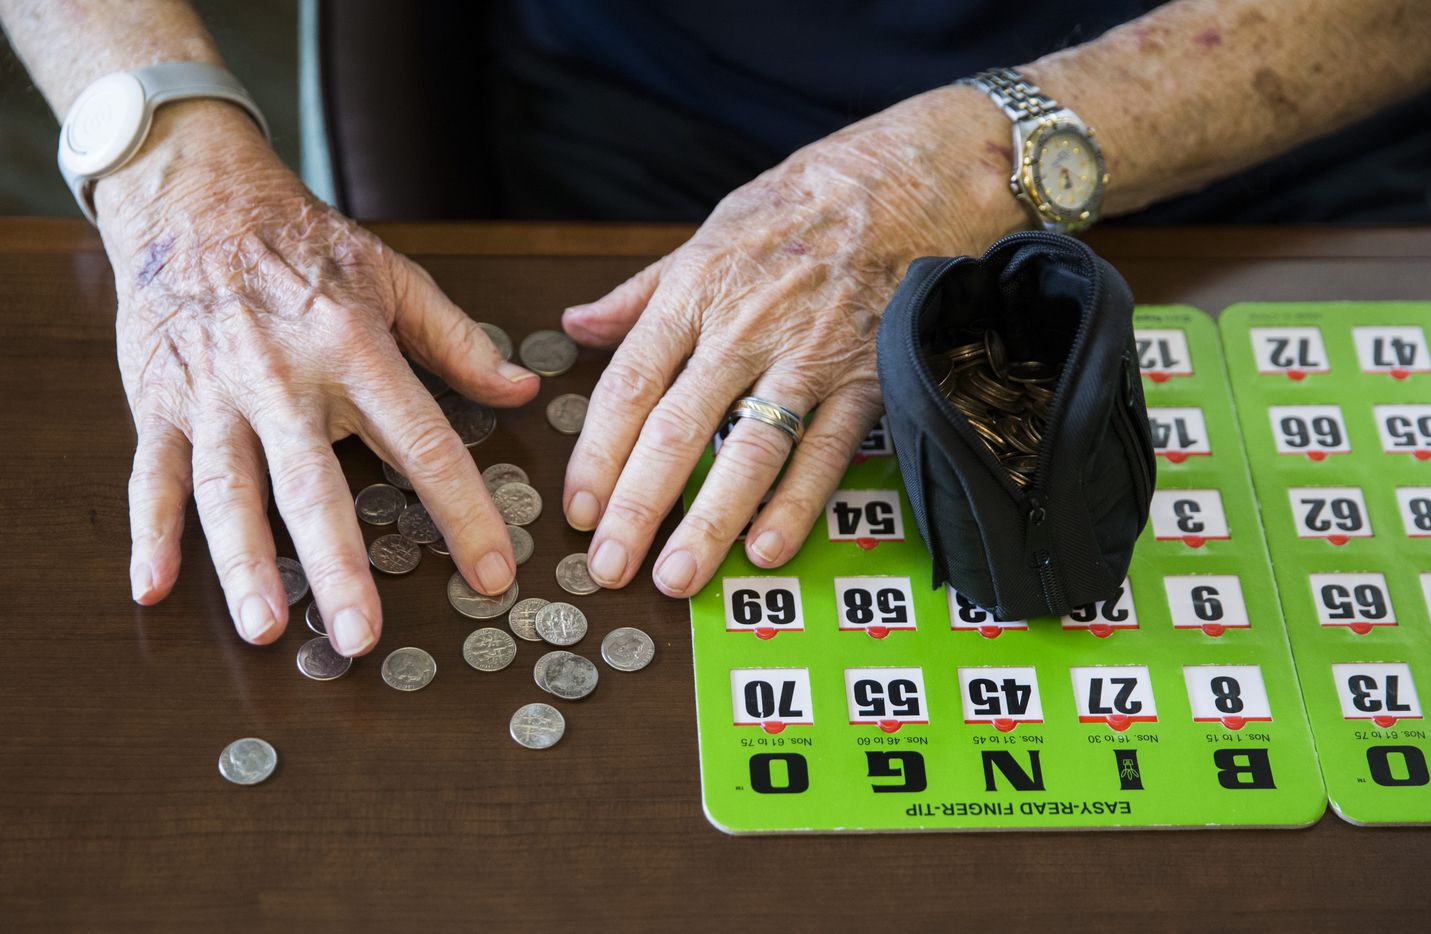 Bob Stiegler sorts dimes to play bingo.  It costs a dime to play each card.